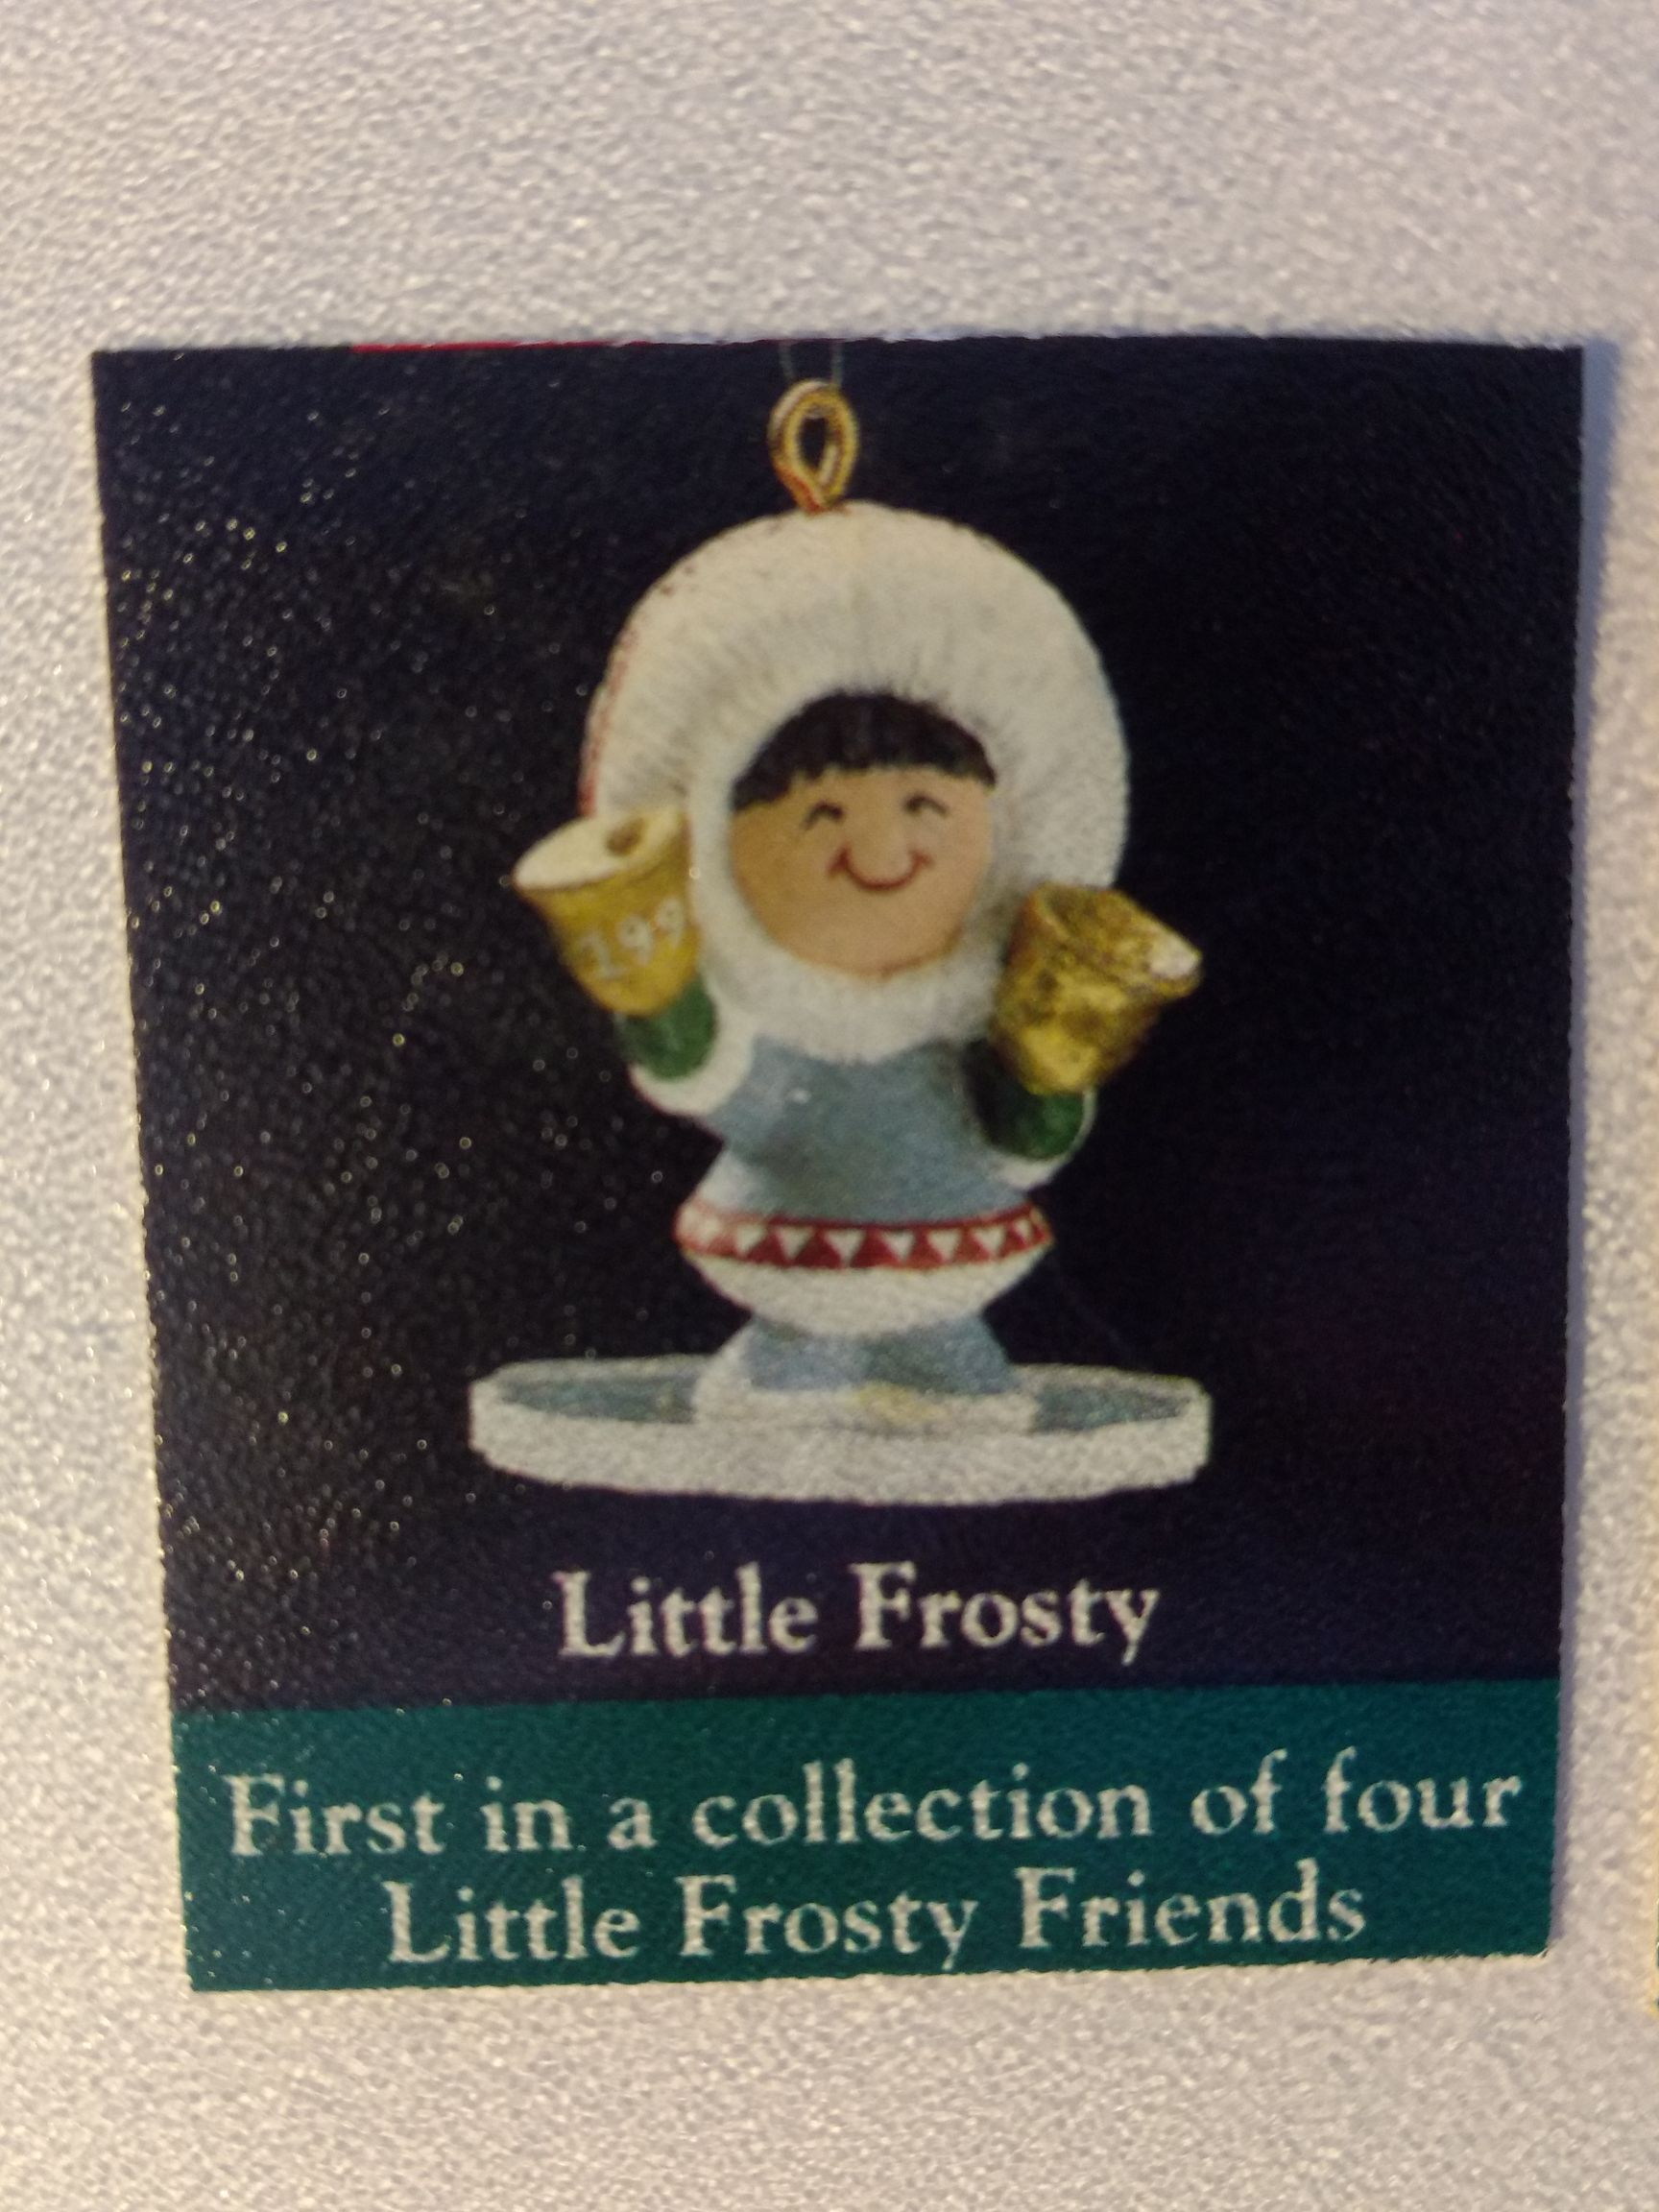 Z - Little Frosty Friends Ornament - Hallmark front image (front cover)